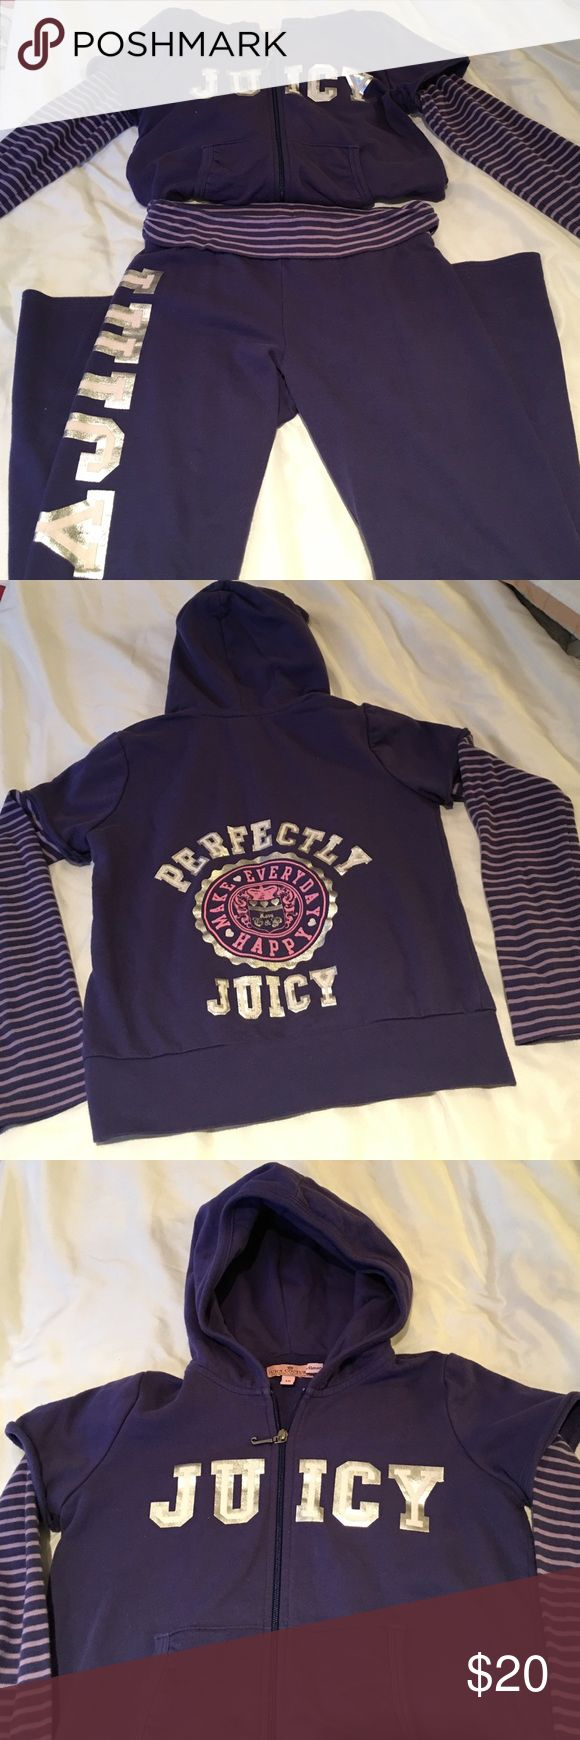 JUICY COUTURE Girls Sweatsuit Very good condition .. Shows normal wear.  Beautiful purple and silver combo.  Pants have striped fabric that folds over waist and matches sleeves.  87% Cotton and 13% Poly.  Girls Size 10 but runs a little small.  I believe more like size 8. Juicy Couture Matching Sets